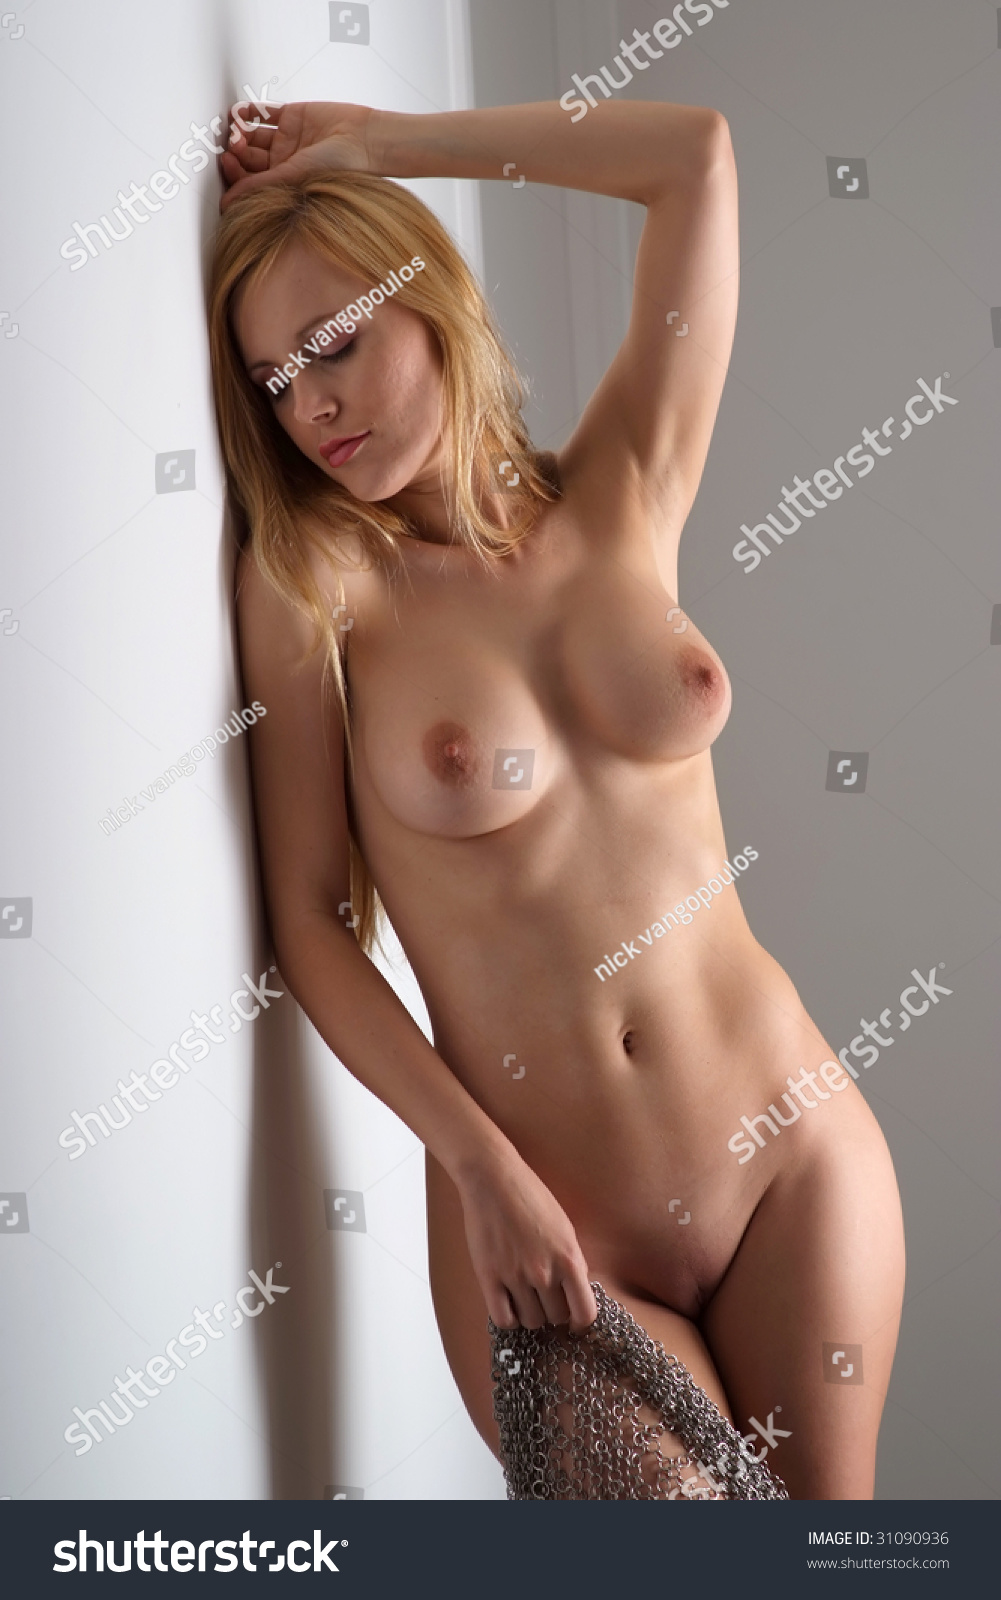 naked woman striping